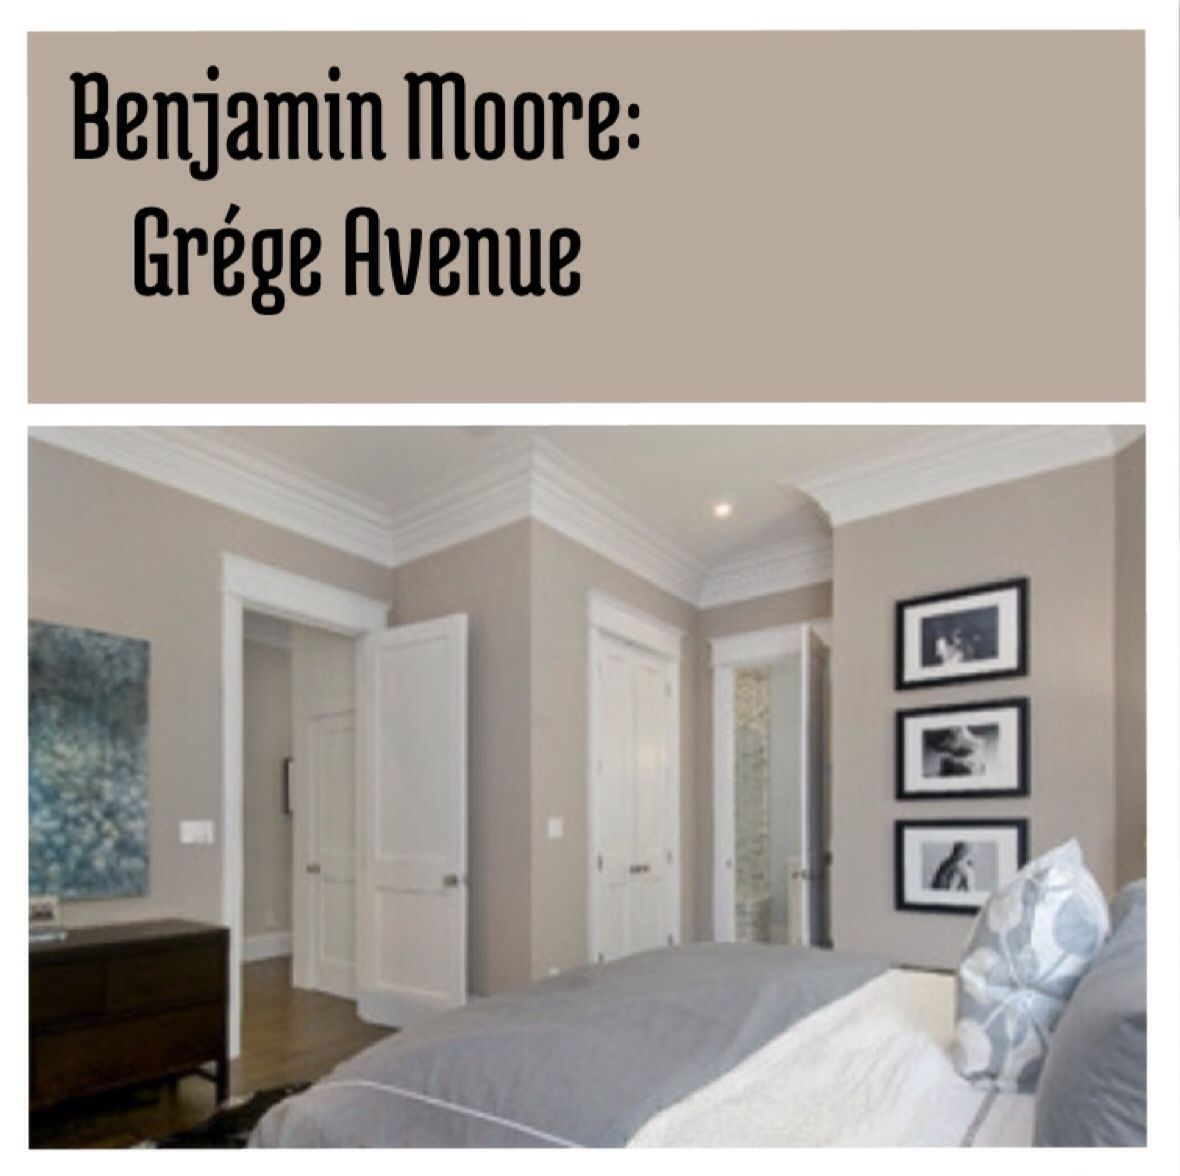 Benjamin moore grége avenue beautiful neutral wall color to paint